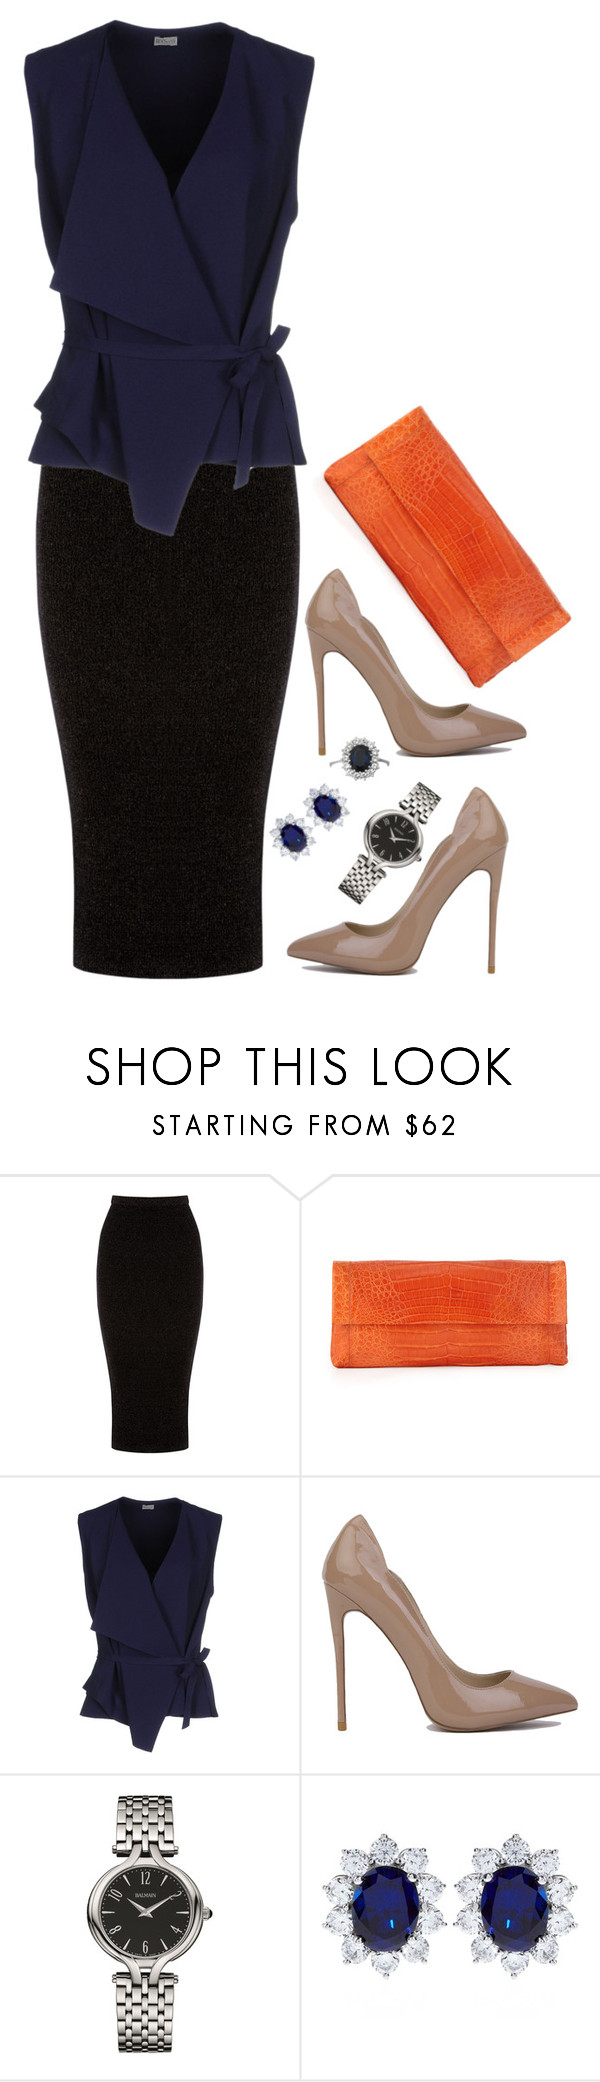 """Watch & Learn"" by jloveespinal ❤ liked on Polyvore featuring Warehouse, Nancy Gonzalez, Mantù, Akira, Balmain and CARAT*"